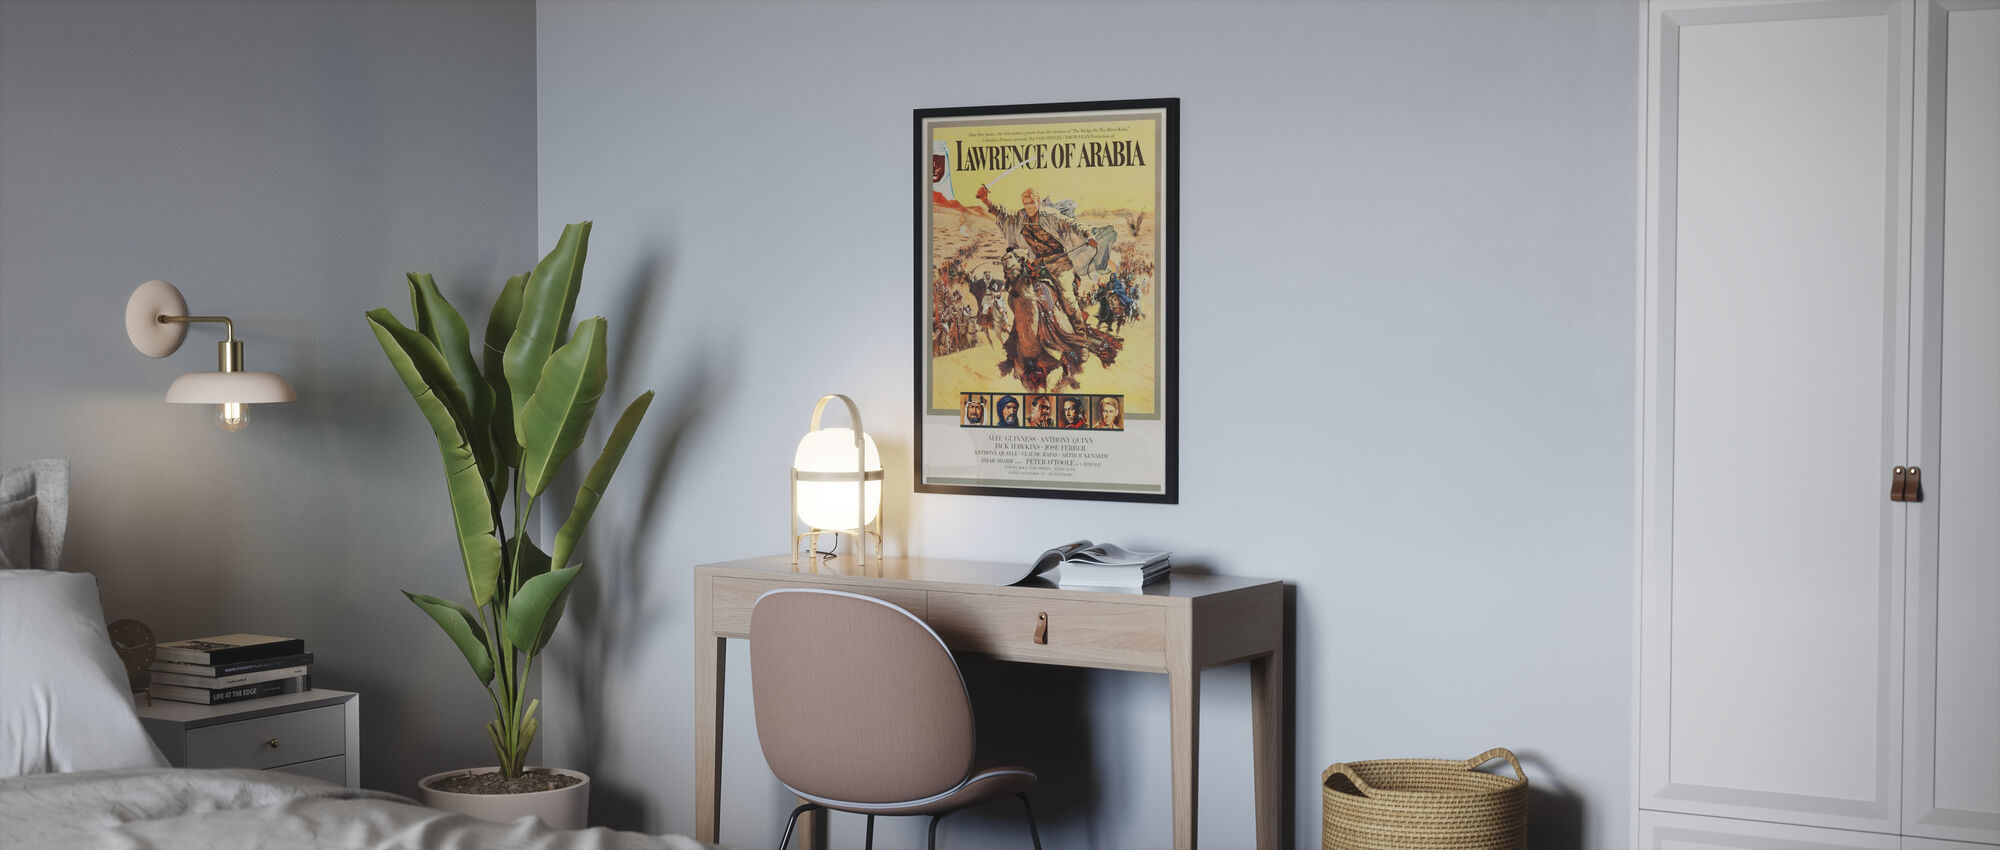 Poster Art Lawrence of Arabia - Poster - Bedroom